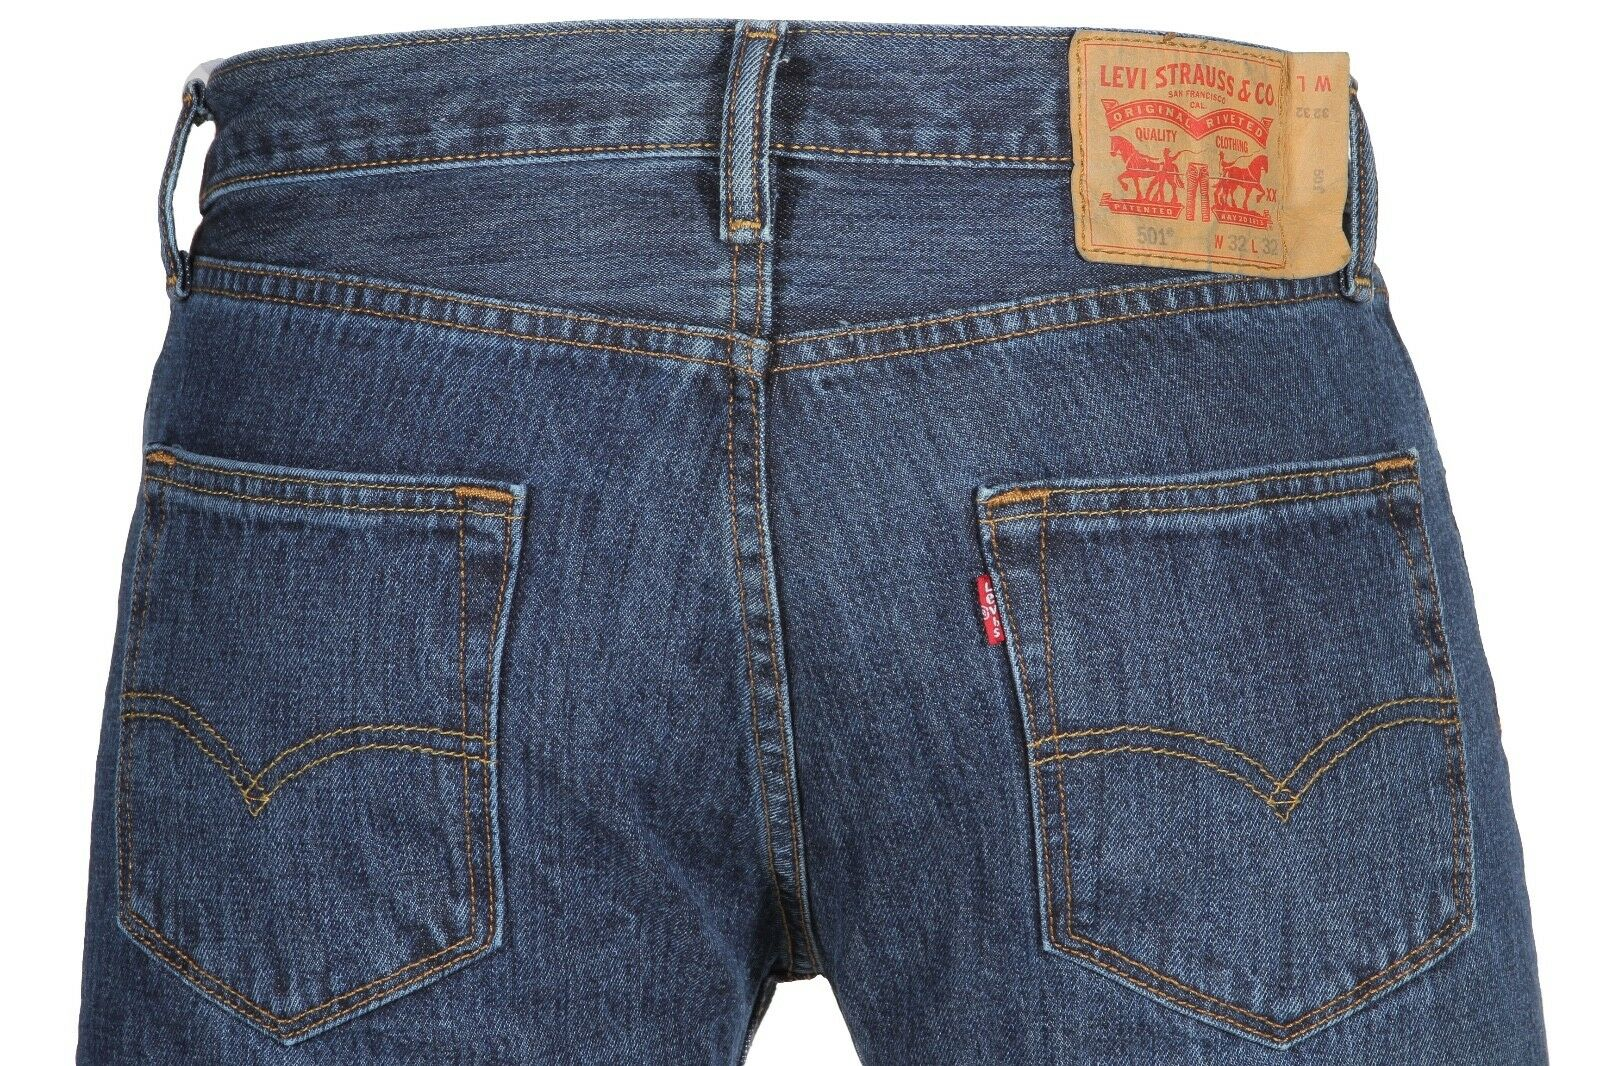 Товар Levi s Men s 501 Original Fit Jeans Straight Leg Button Fly ... 971154bdc93c2